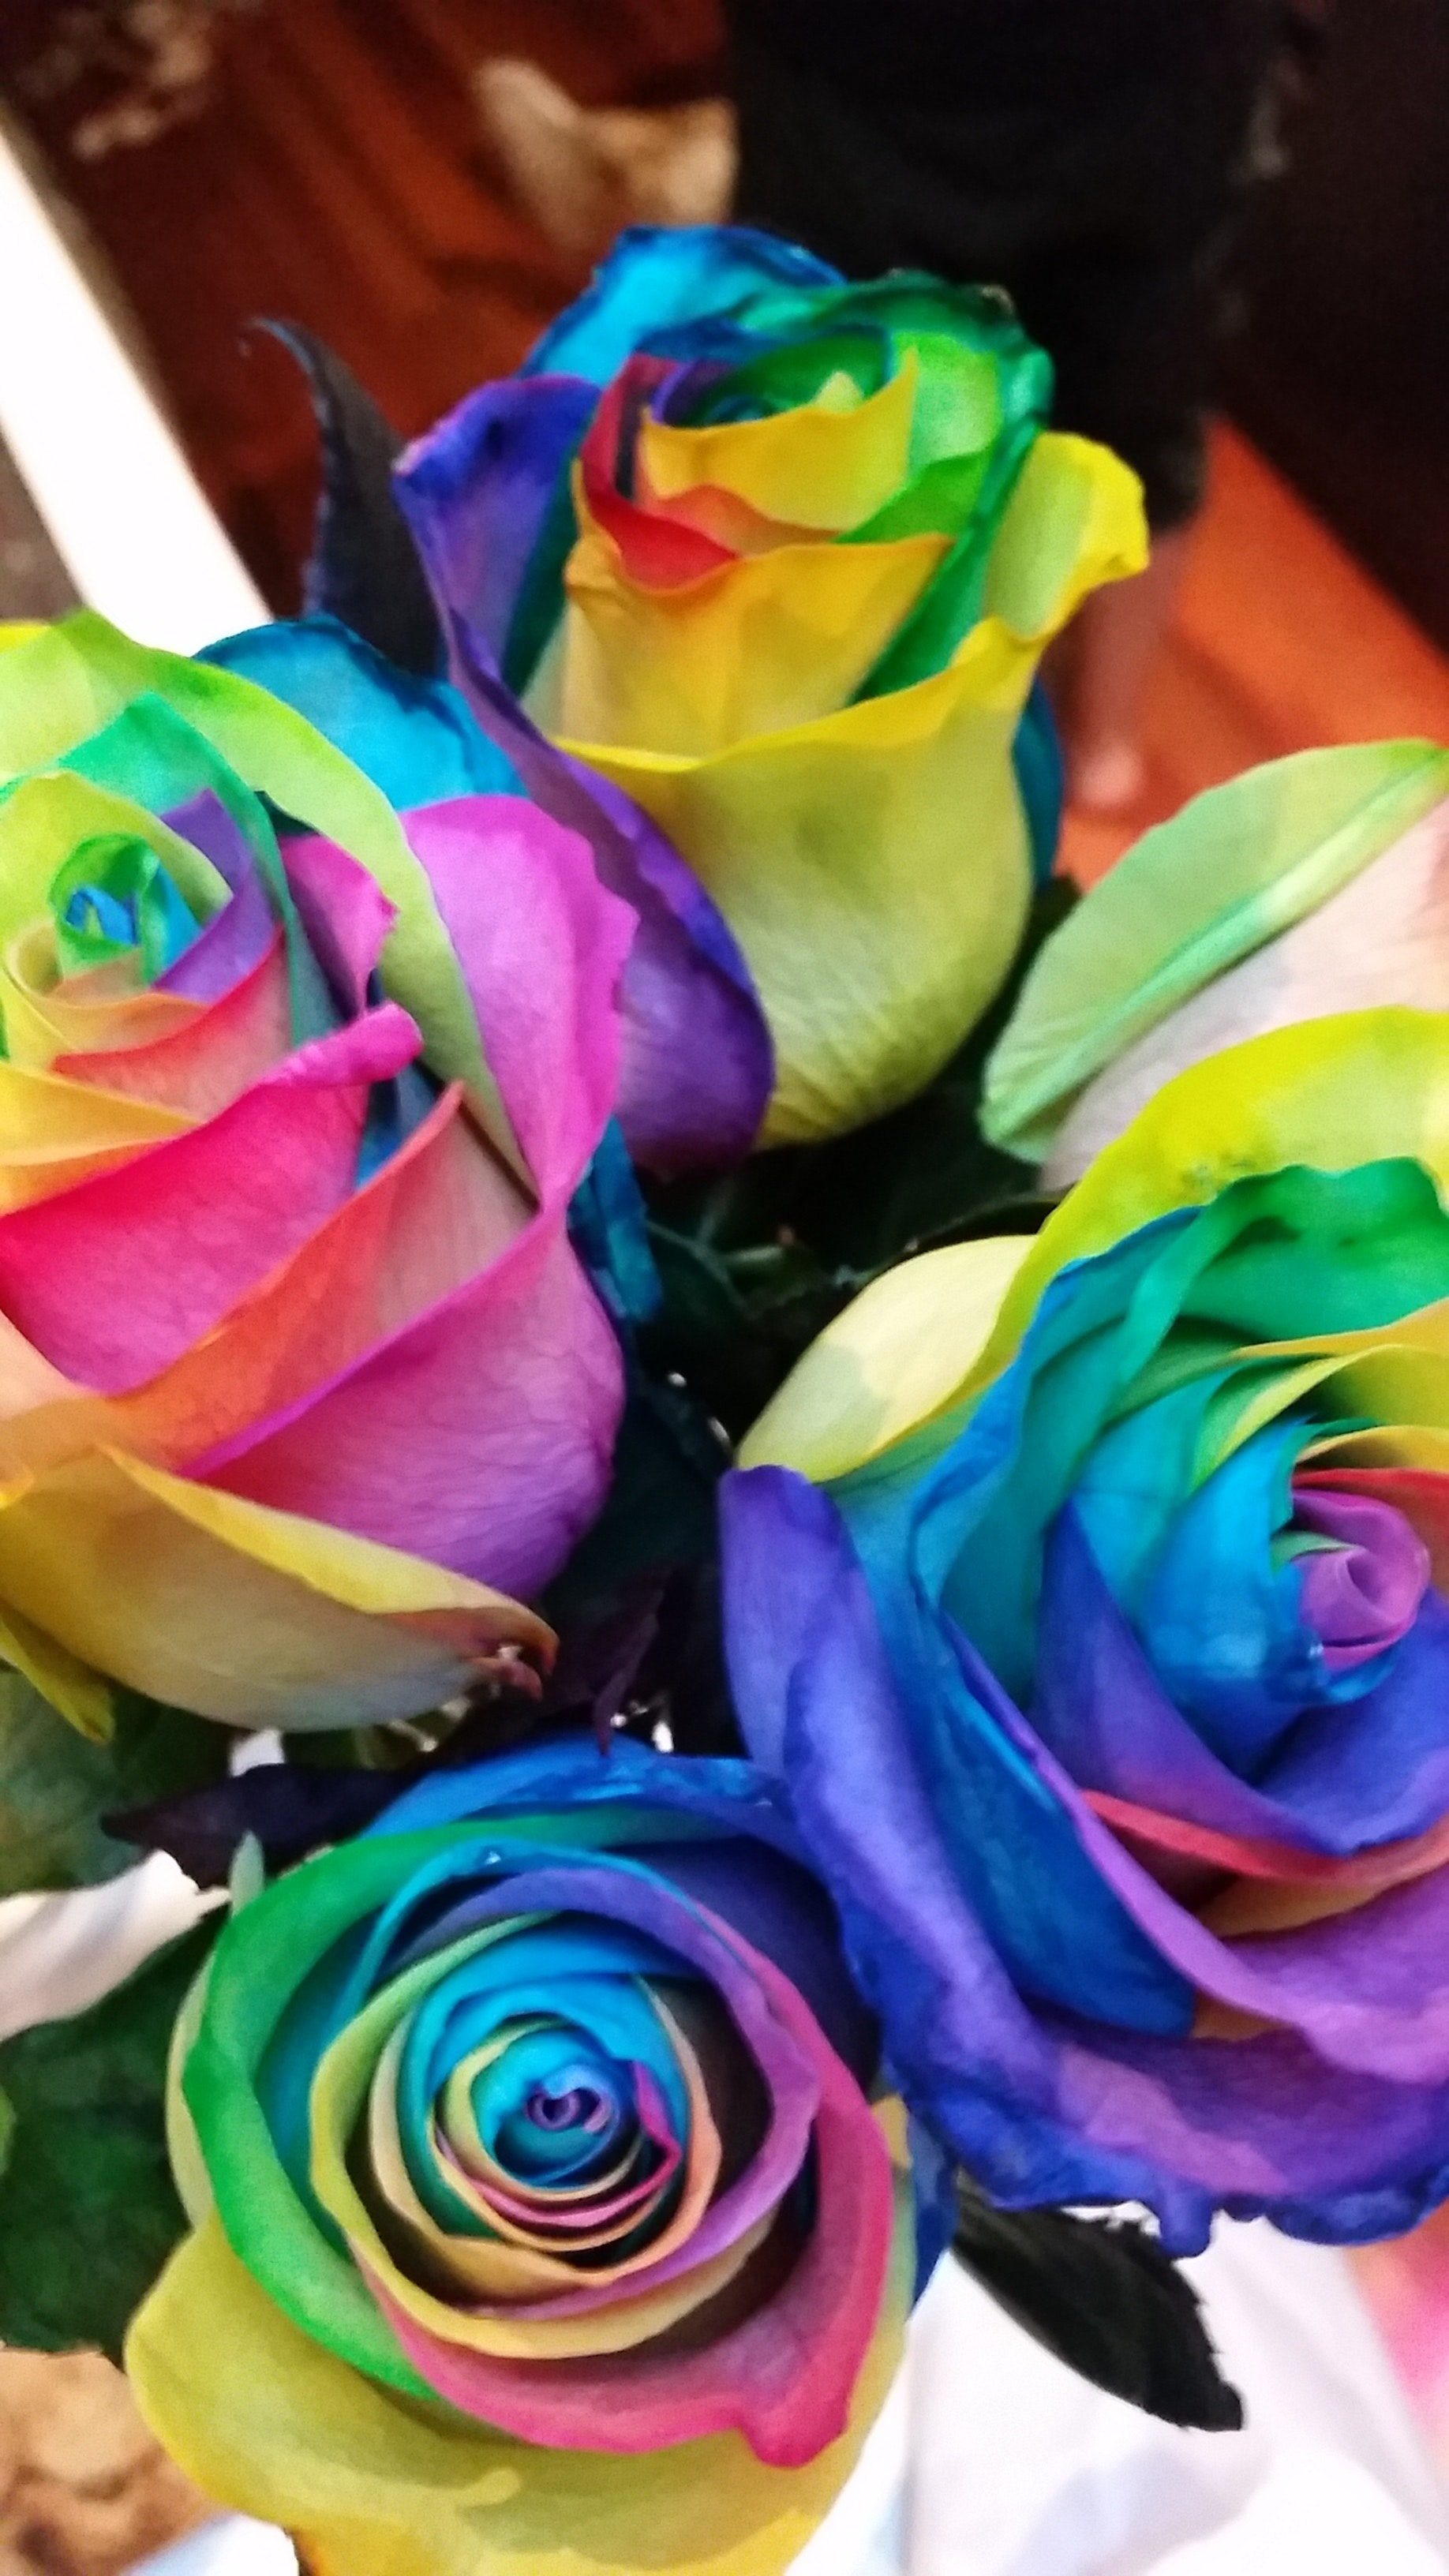 Free images of rainbow roses